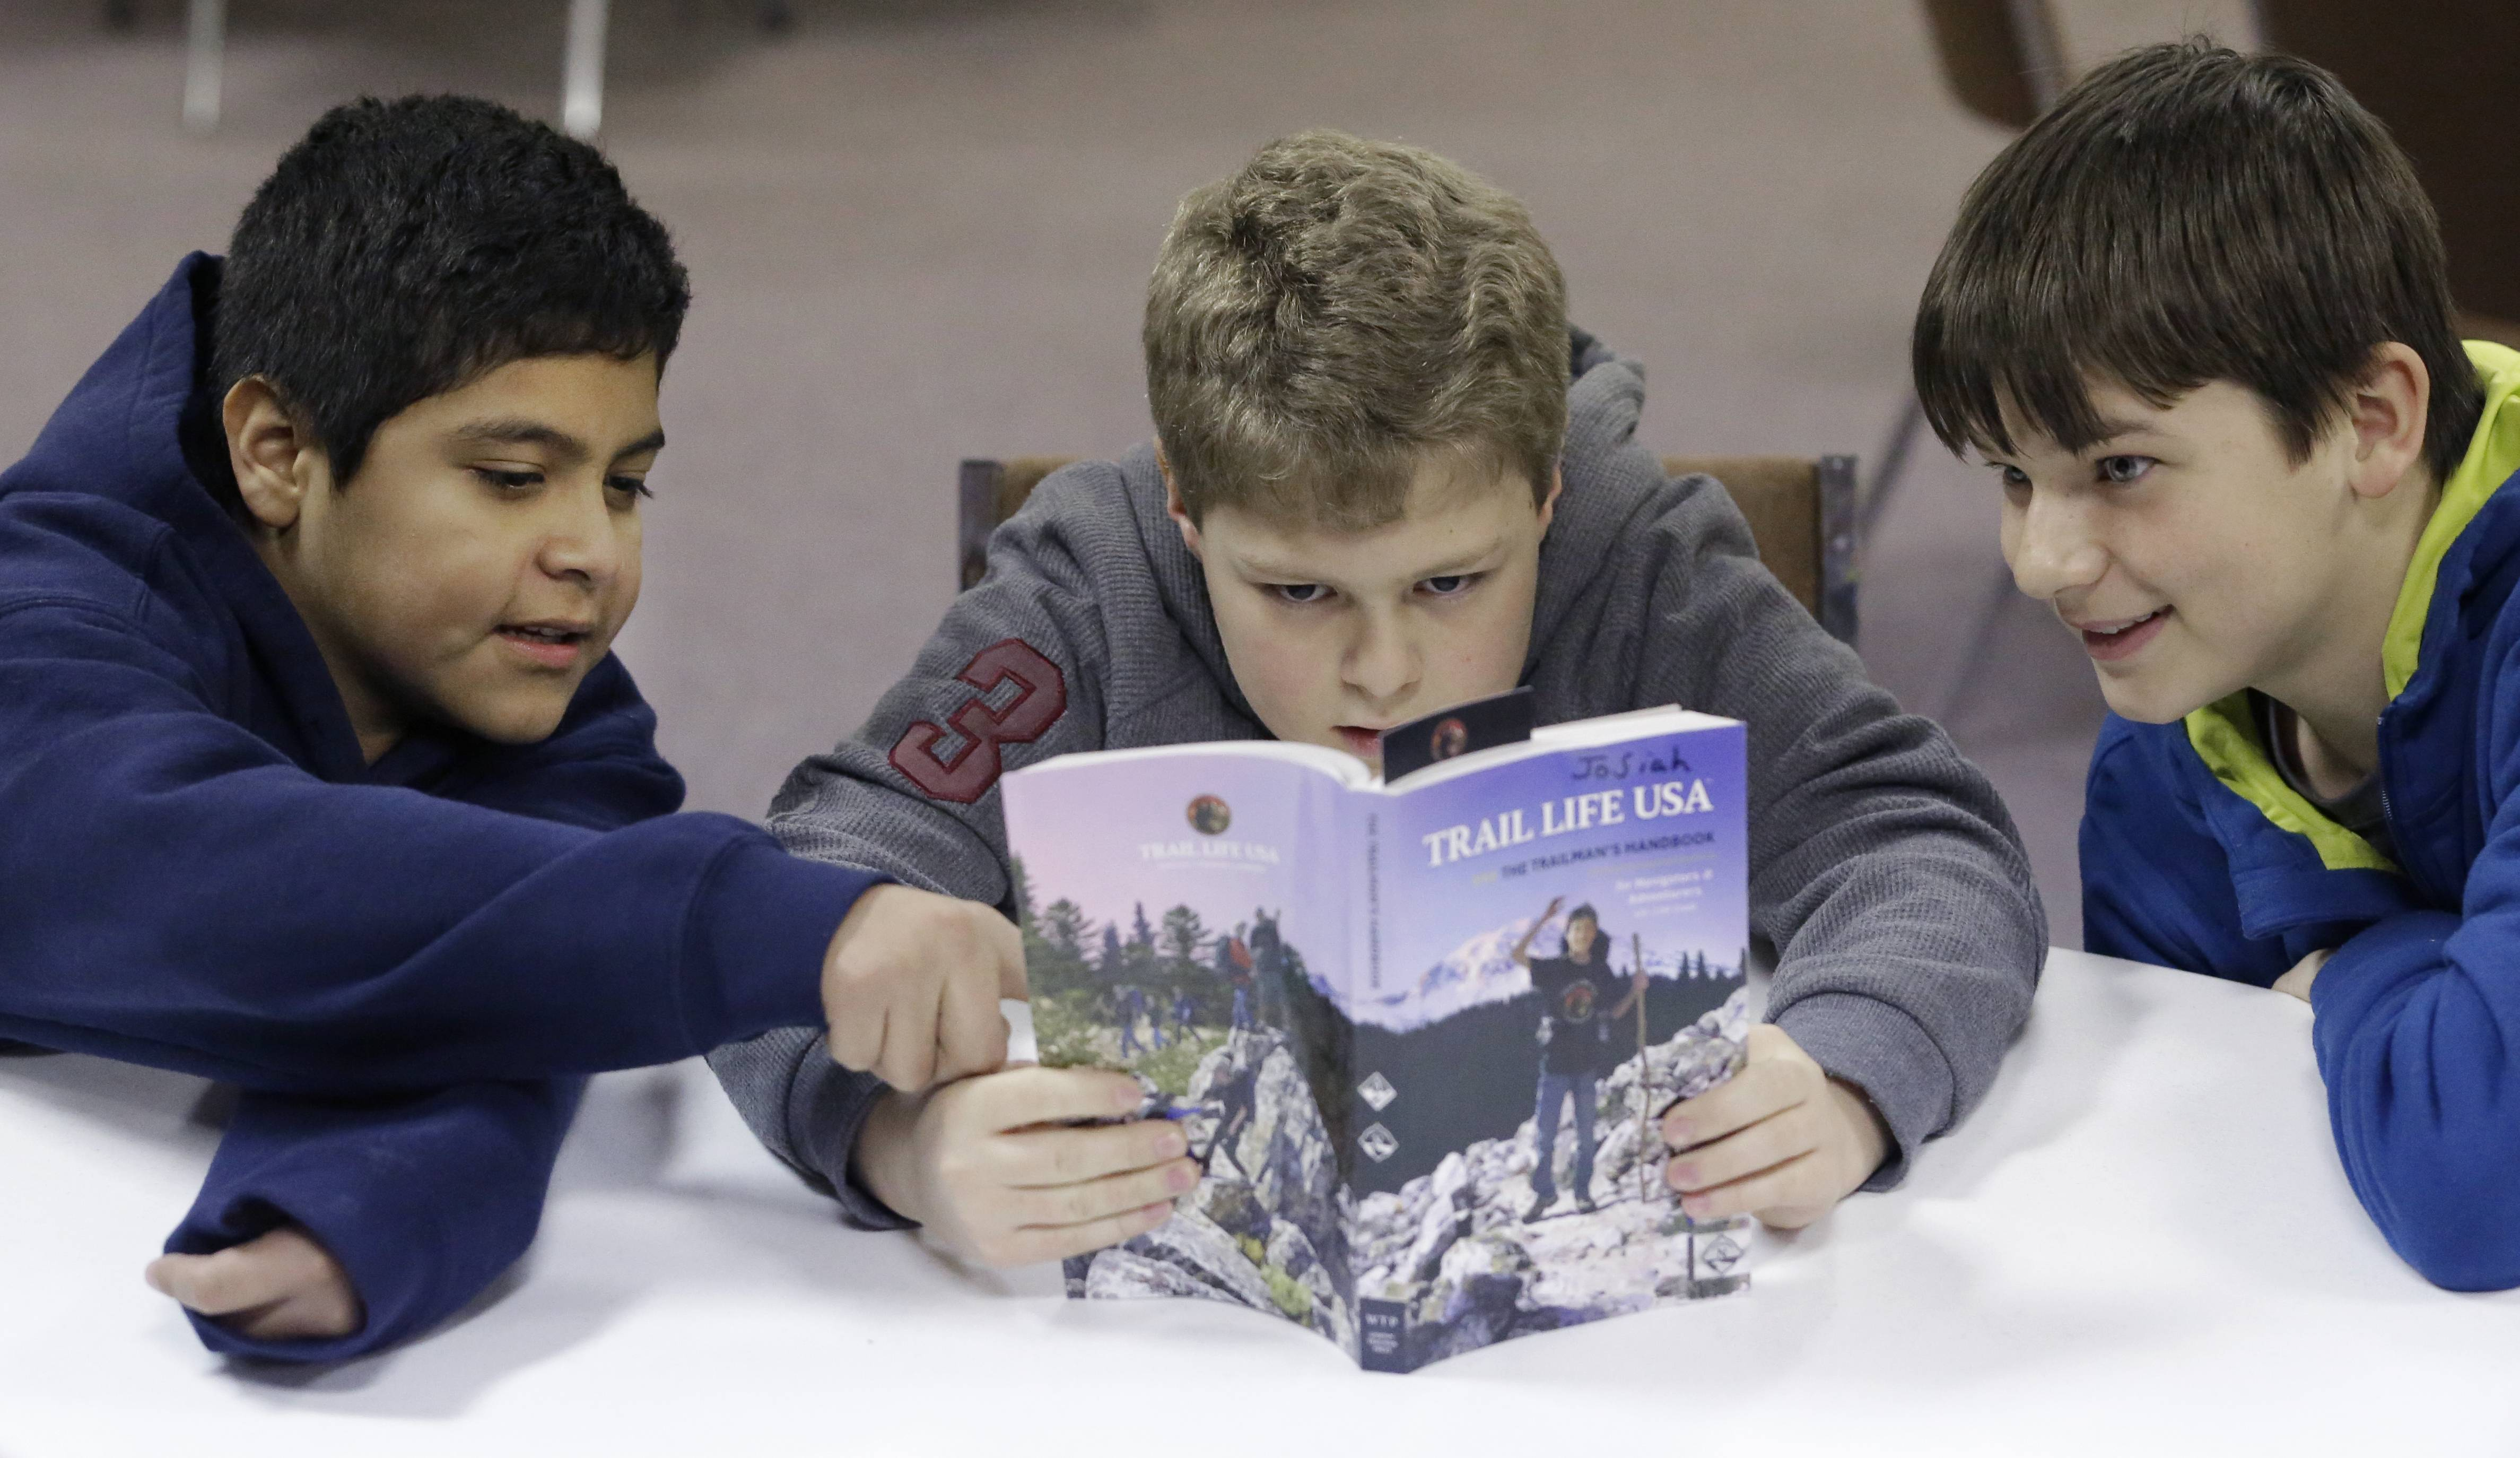 In this Tuesday, Feb. 4, 2014 photo, from left, Erick Izquierdo, Josiah Spear, 12, and Cole McSorley, 12, look at a Trail Life handbook during a gathering of members in North Richland Hills, Texas. Trail Life USA says it has established units in more than 40 states, mostly from Boy Scouts and parents who feel the century-old organization has lost its way.